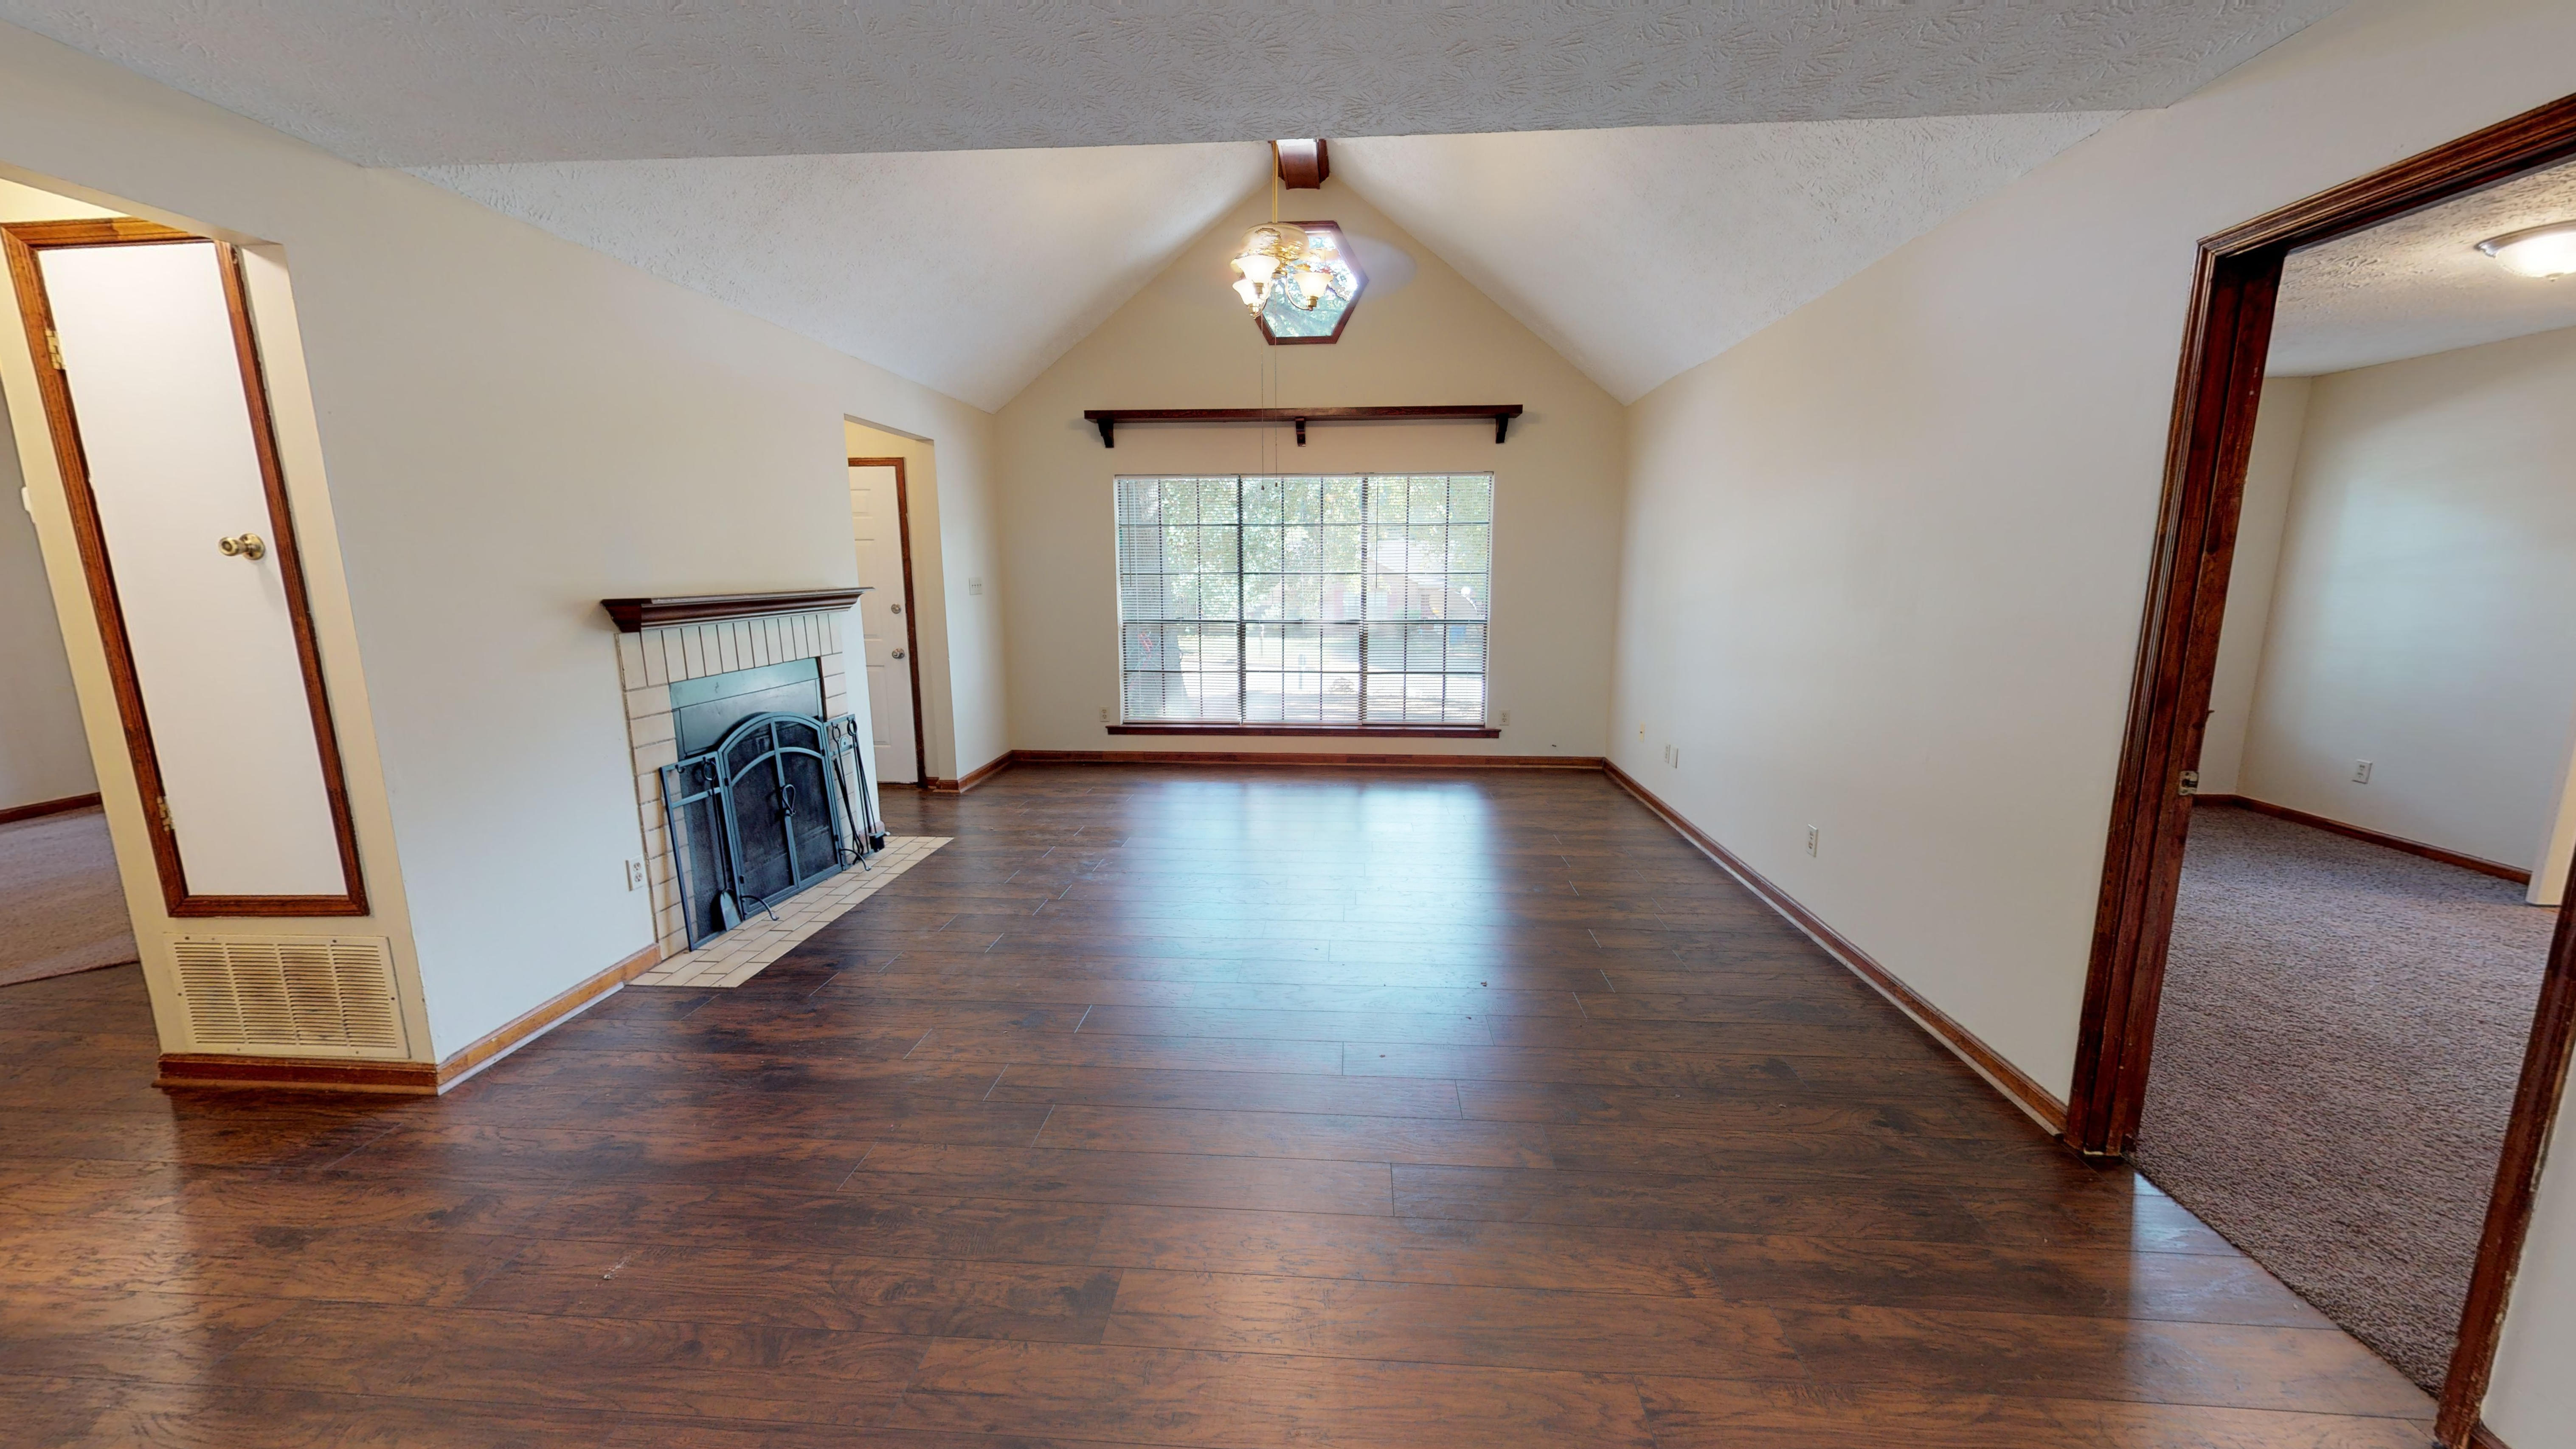 FOR RENT IN PRATTVILLE! 3 BED 2 BATH AT 418 UTAH COURT